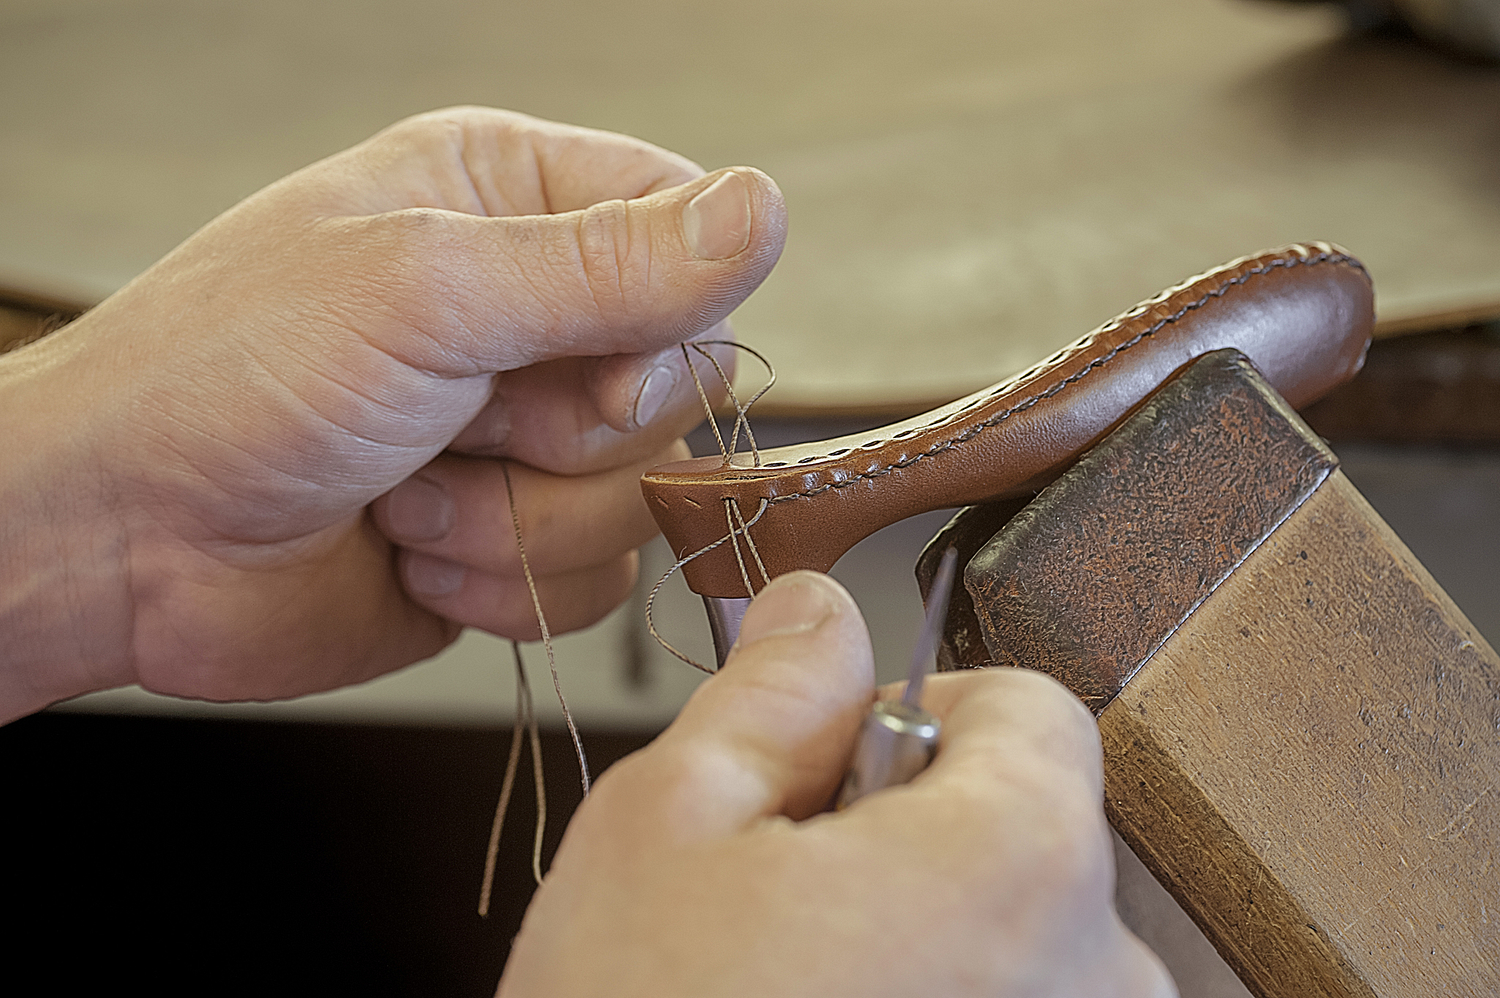 Leather stitching detail with hands, Oxford